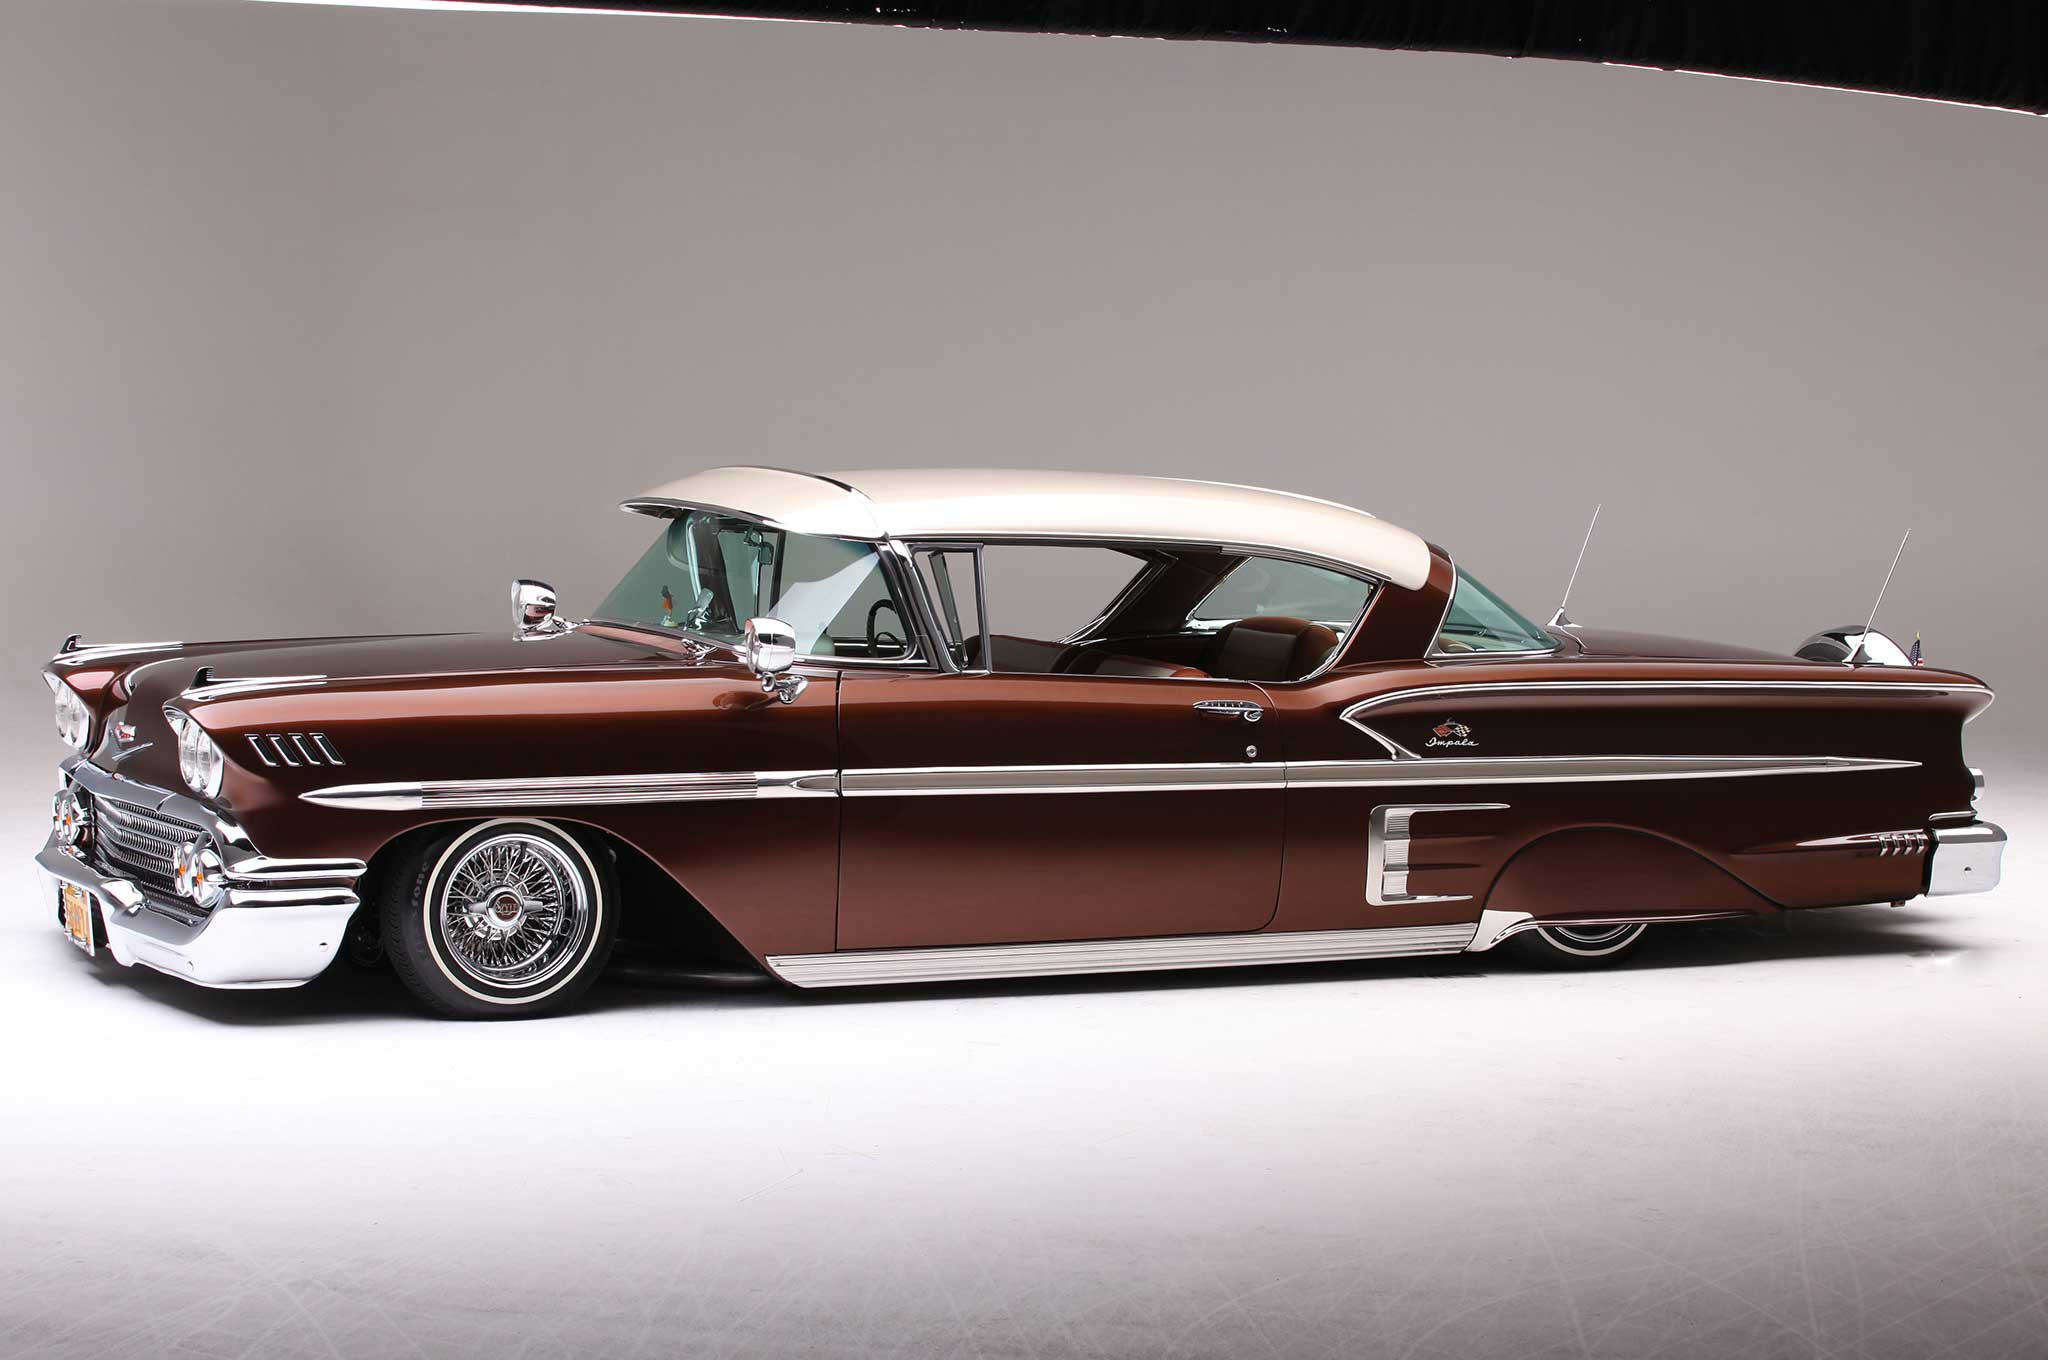 New Chevy Cars >> 1958 Chevrolet Impala - Gentleman's Style of a '58 - Lowrider